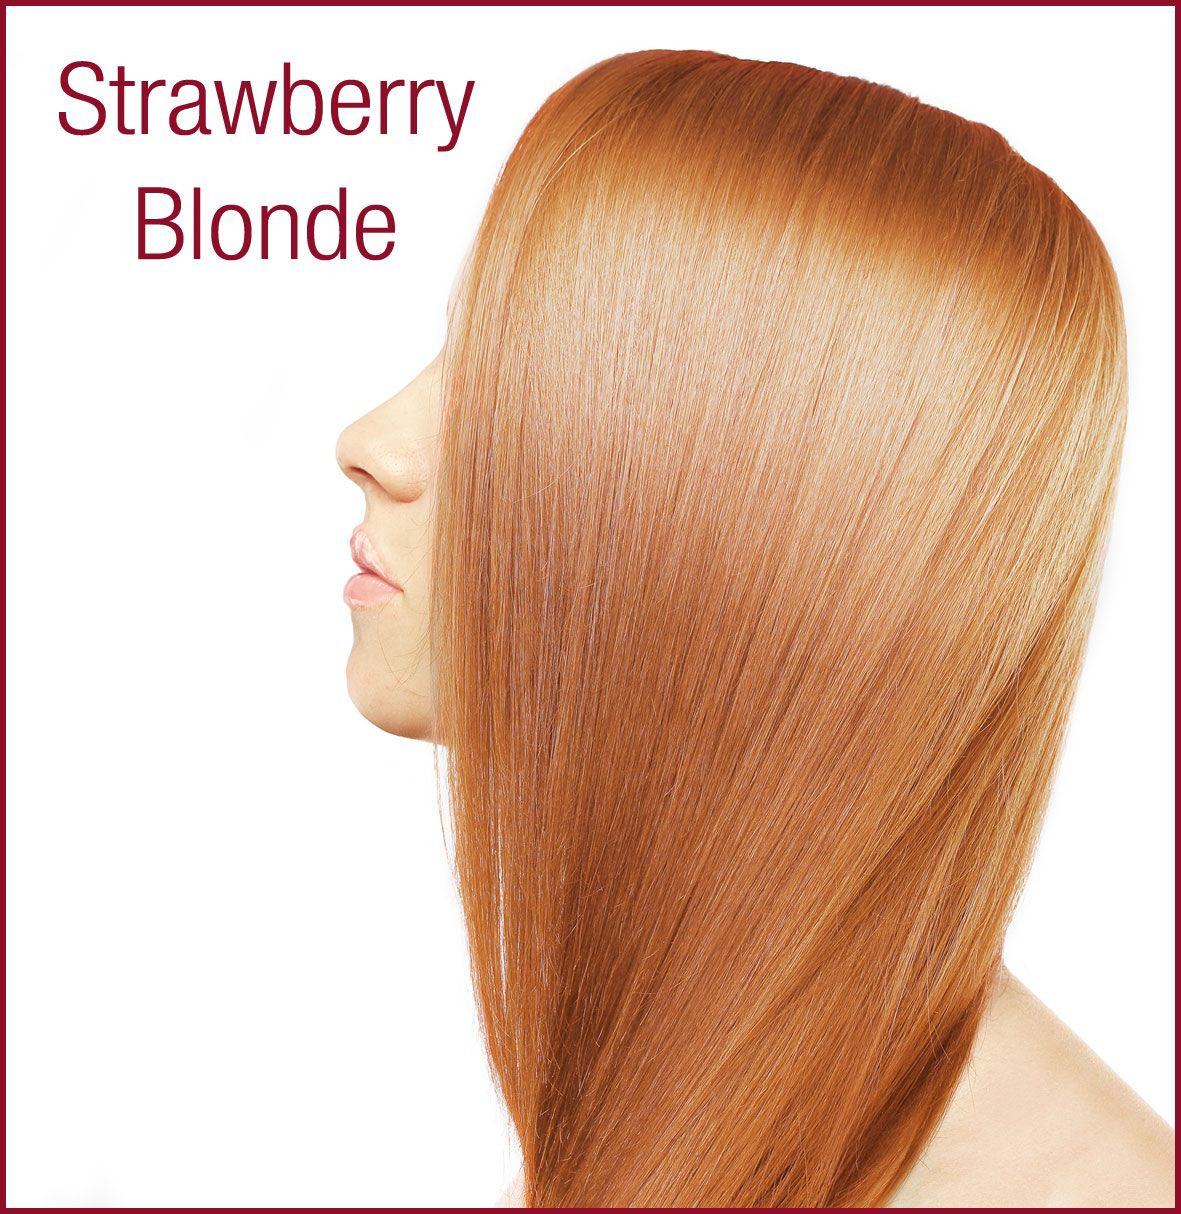 Surya strawberry google search hair ideaa pinterest billedresultat for strawberry blonde hair color chart nvjuhfo Image collections